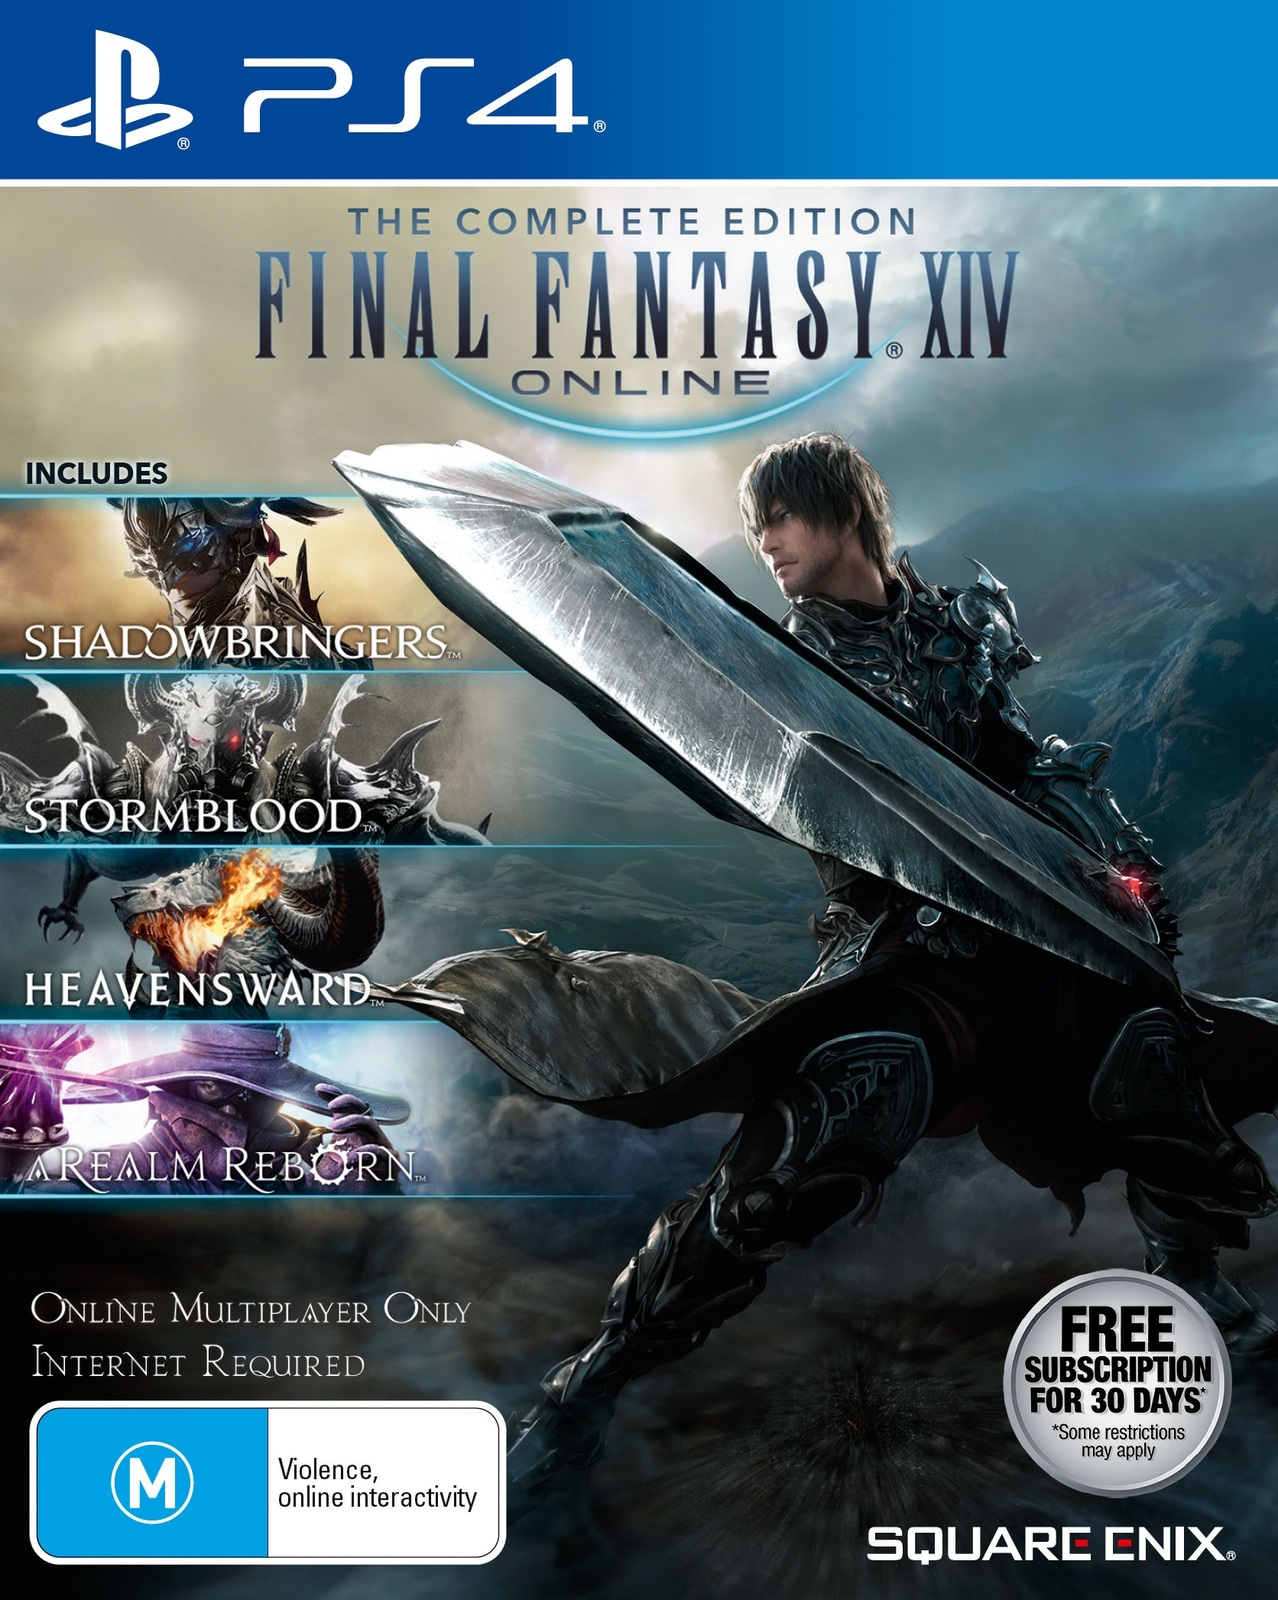 Final Fantasy XIV: Complete Edition for PS4 image